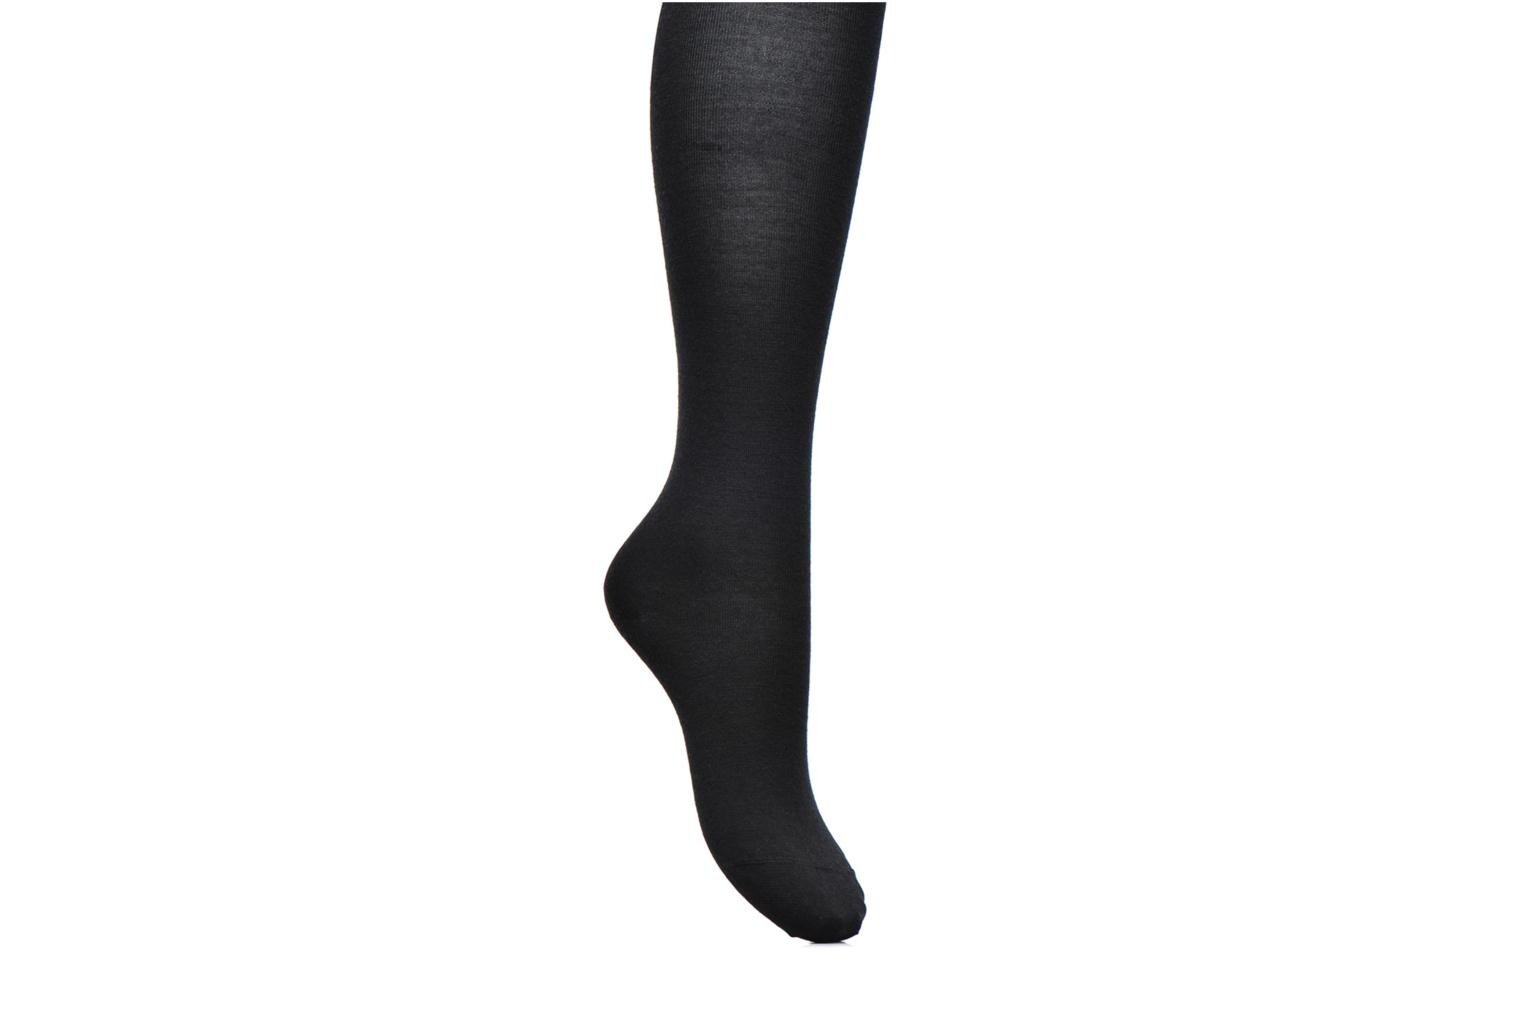 Socks & tights BLEUFORÊT Collants Laine Fine Intérieur Coton Black detailed view/ Pair view